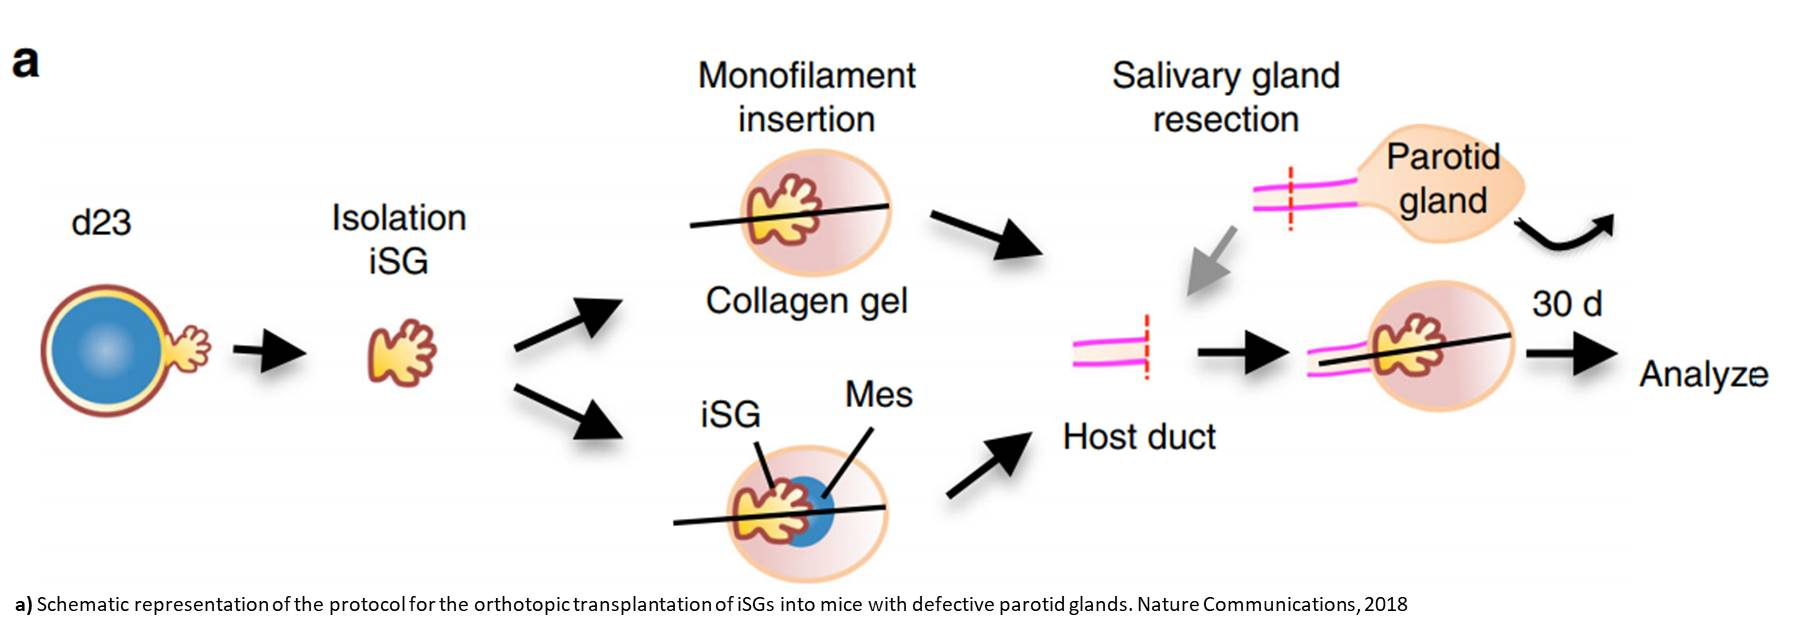 Salivary gland organoids from embryonic stem cells